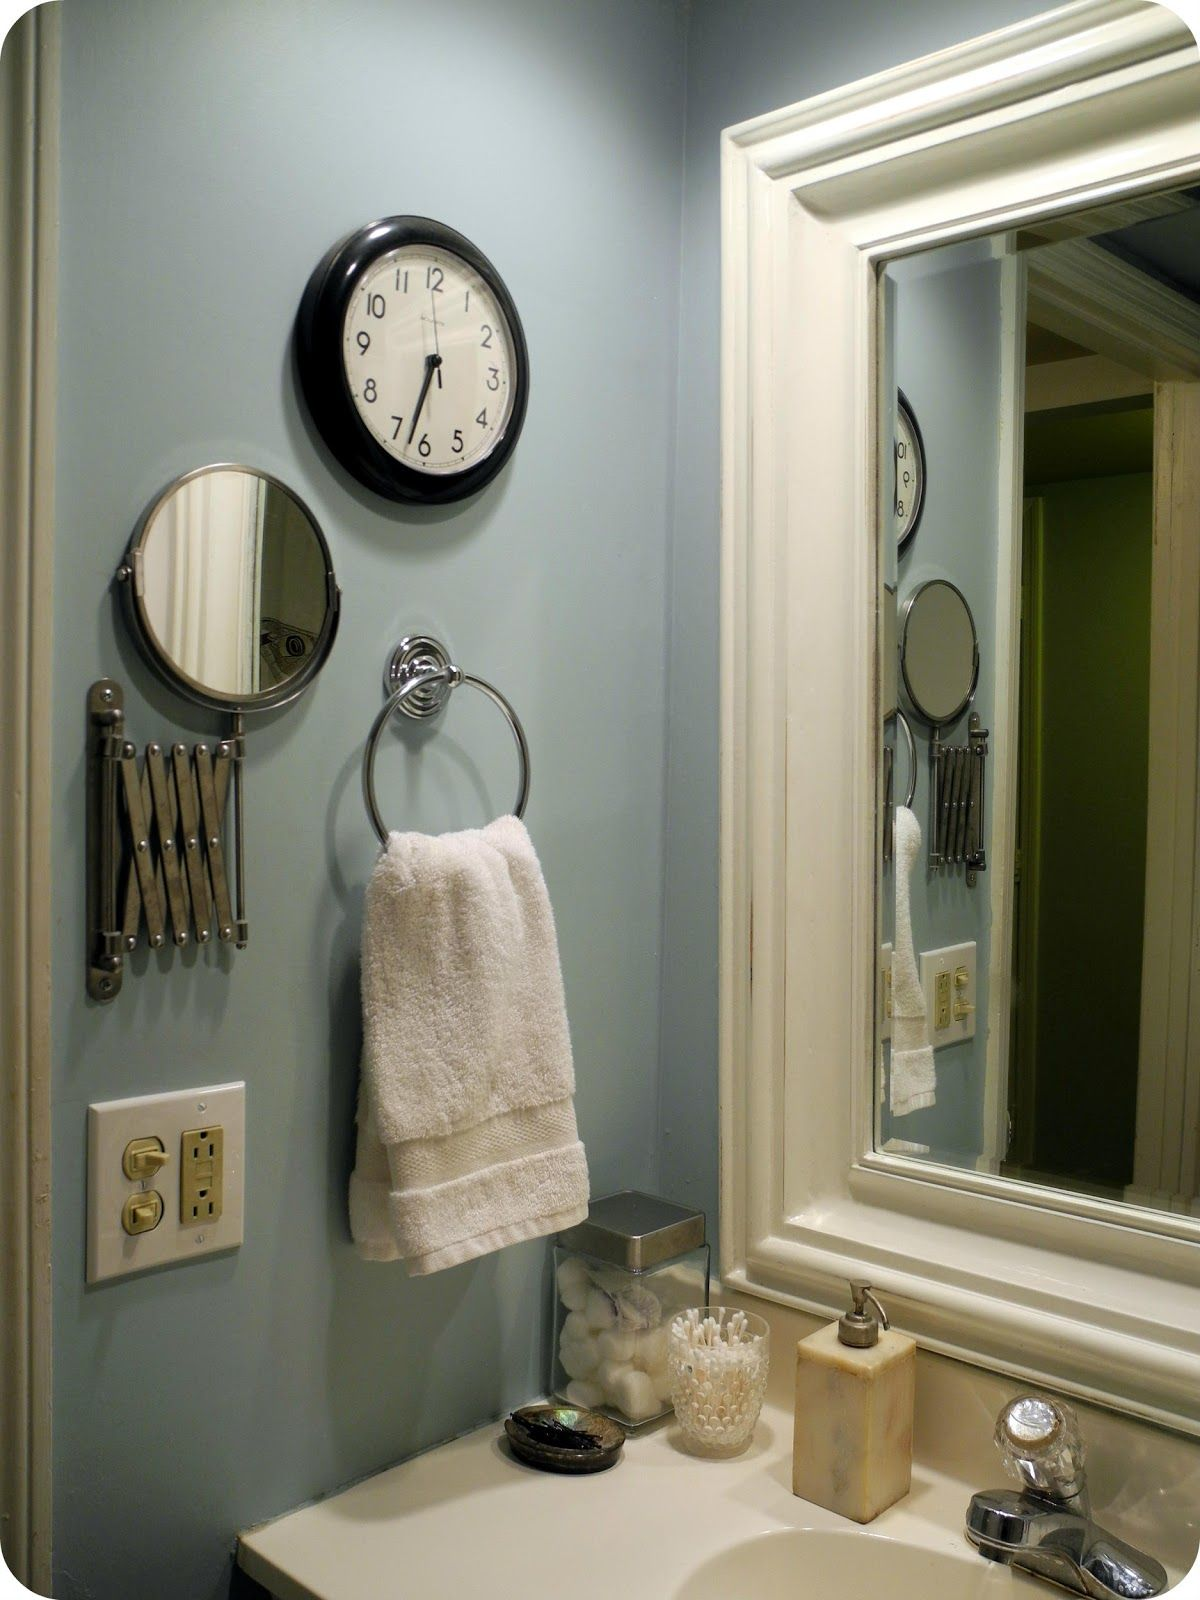 Spa Blue Bathroom - Images of bathrooms using subway tile since my bathroom is practically the size of a